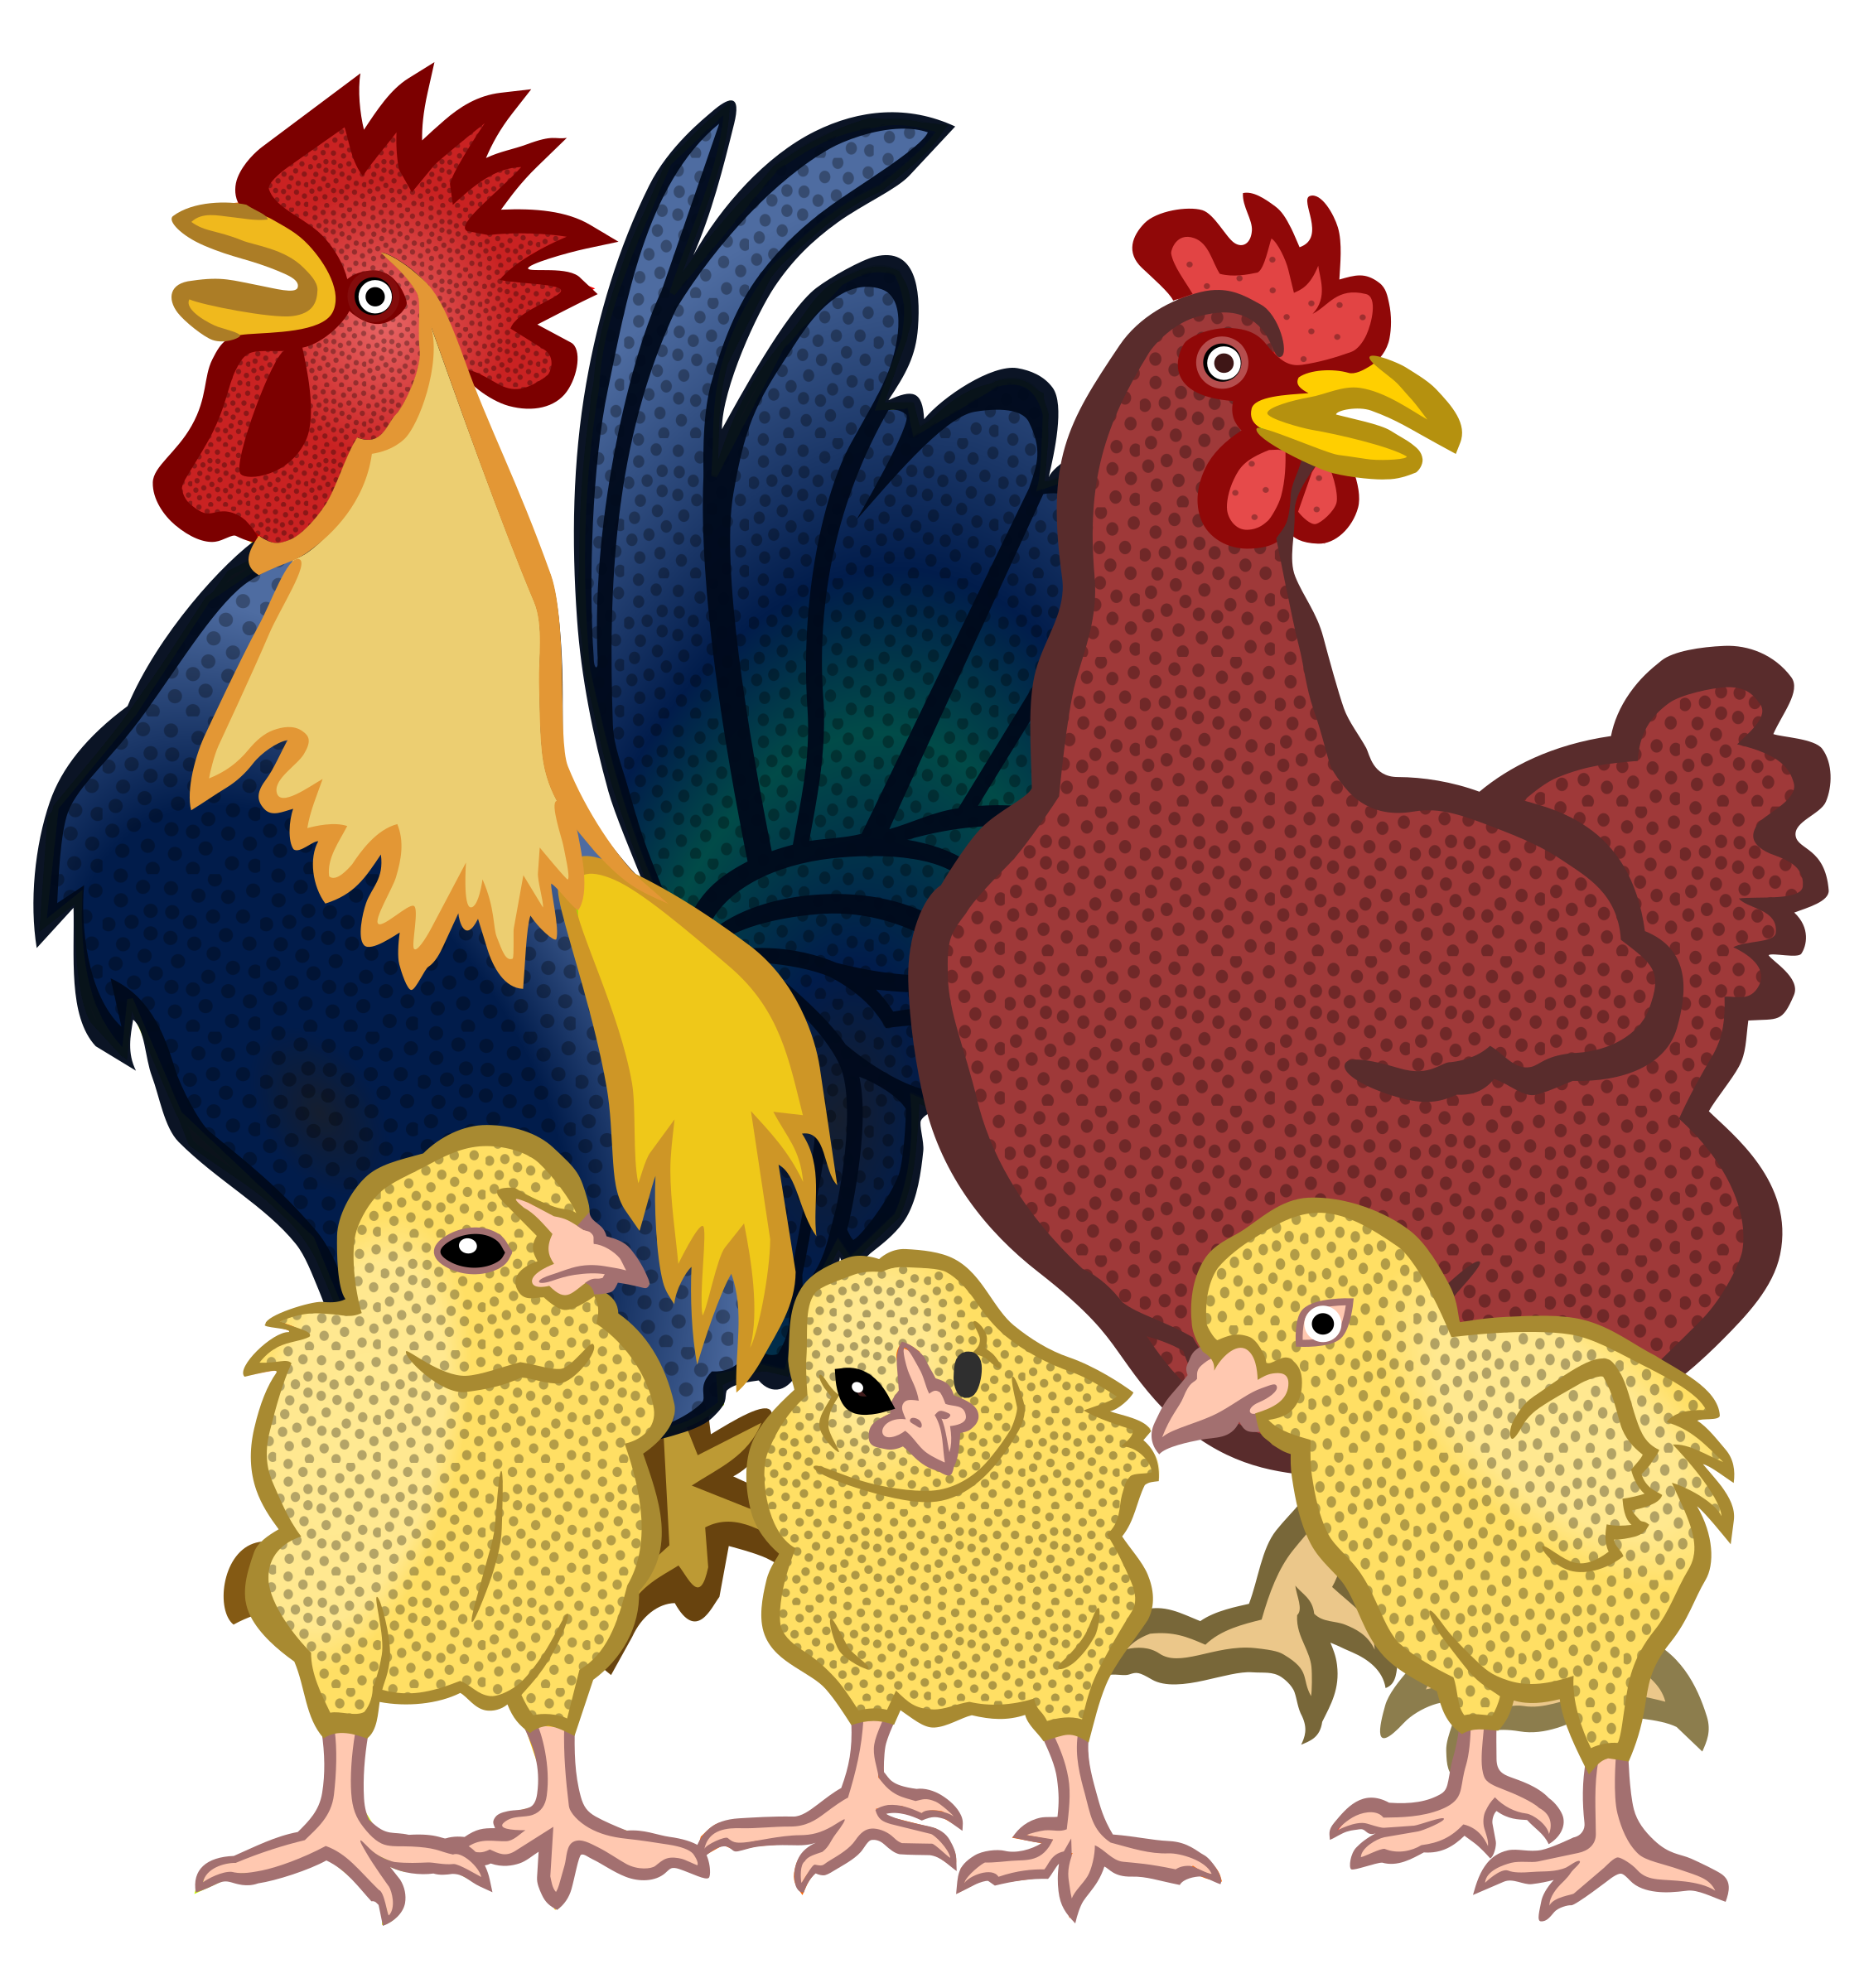 chickens vector clipart image free stock photo public domain rh goodfreephotos com dead chicken pictures clip art chicken salad pictures clip art